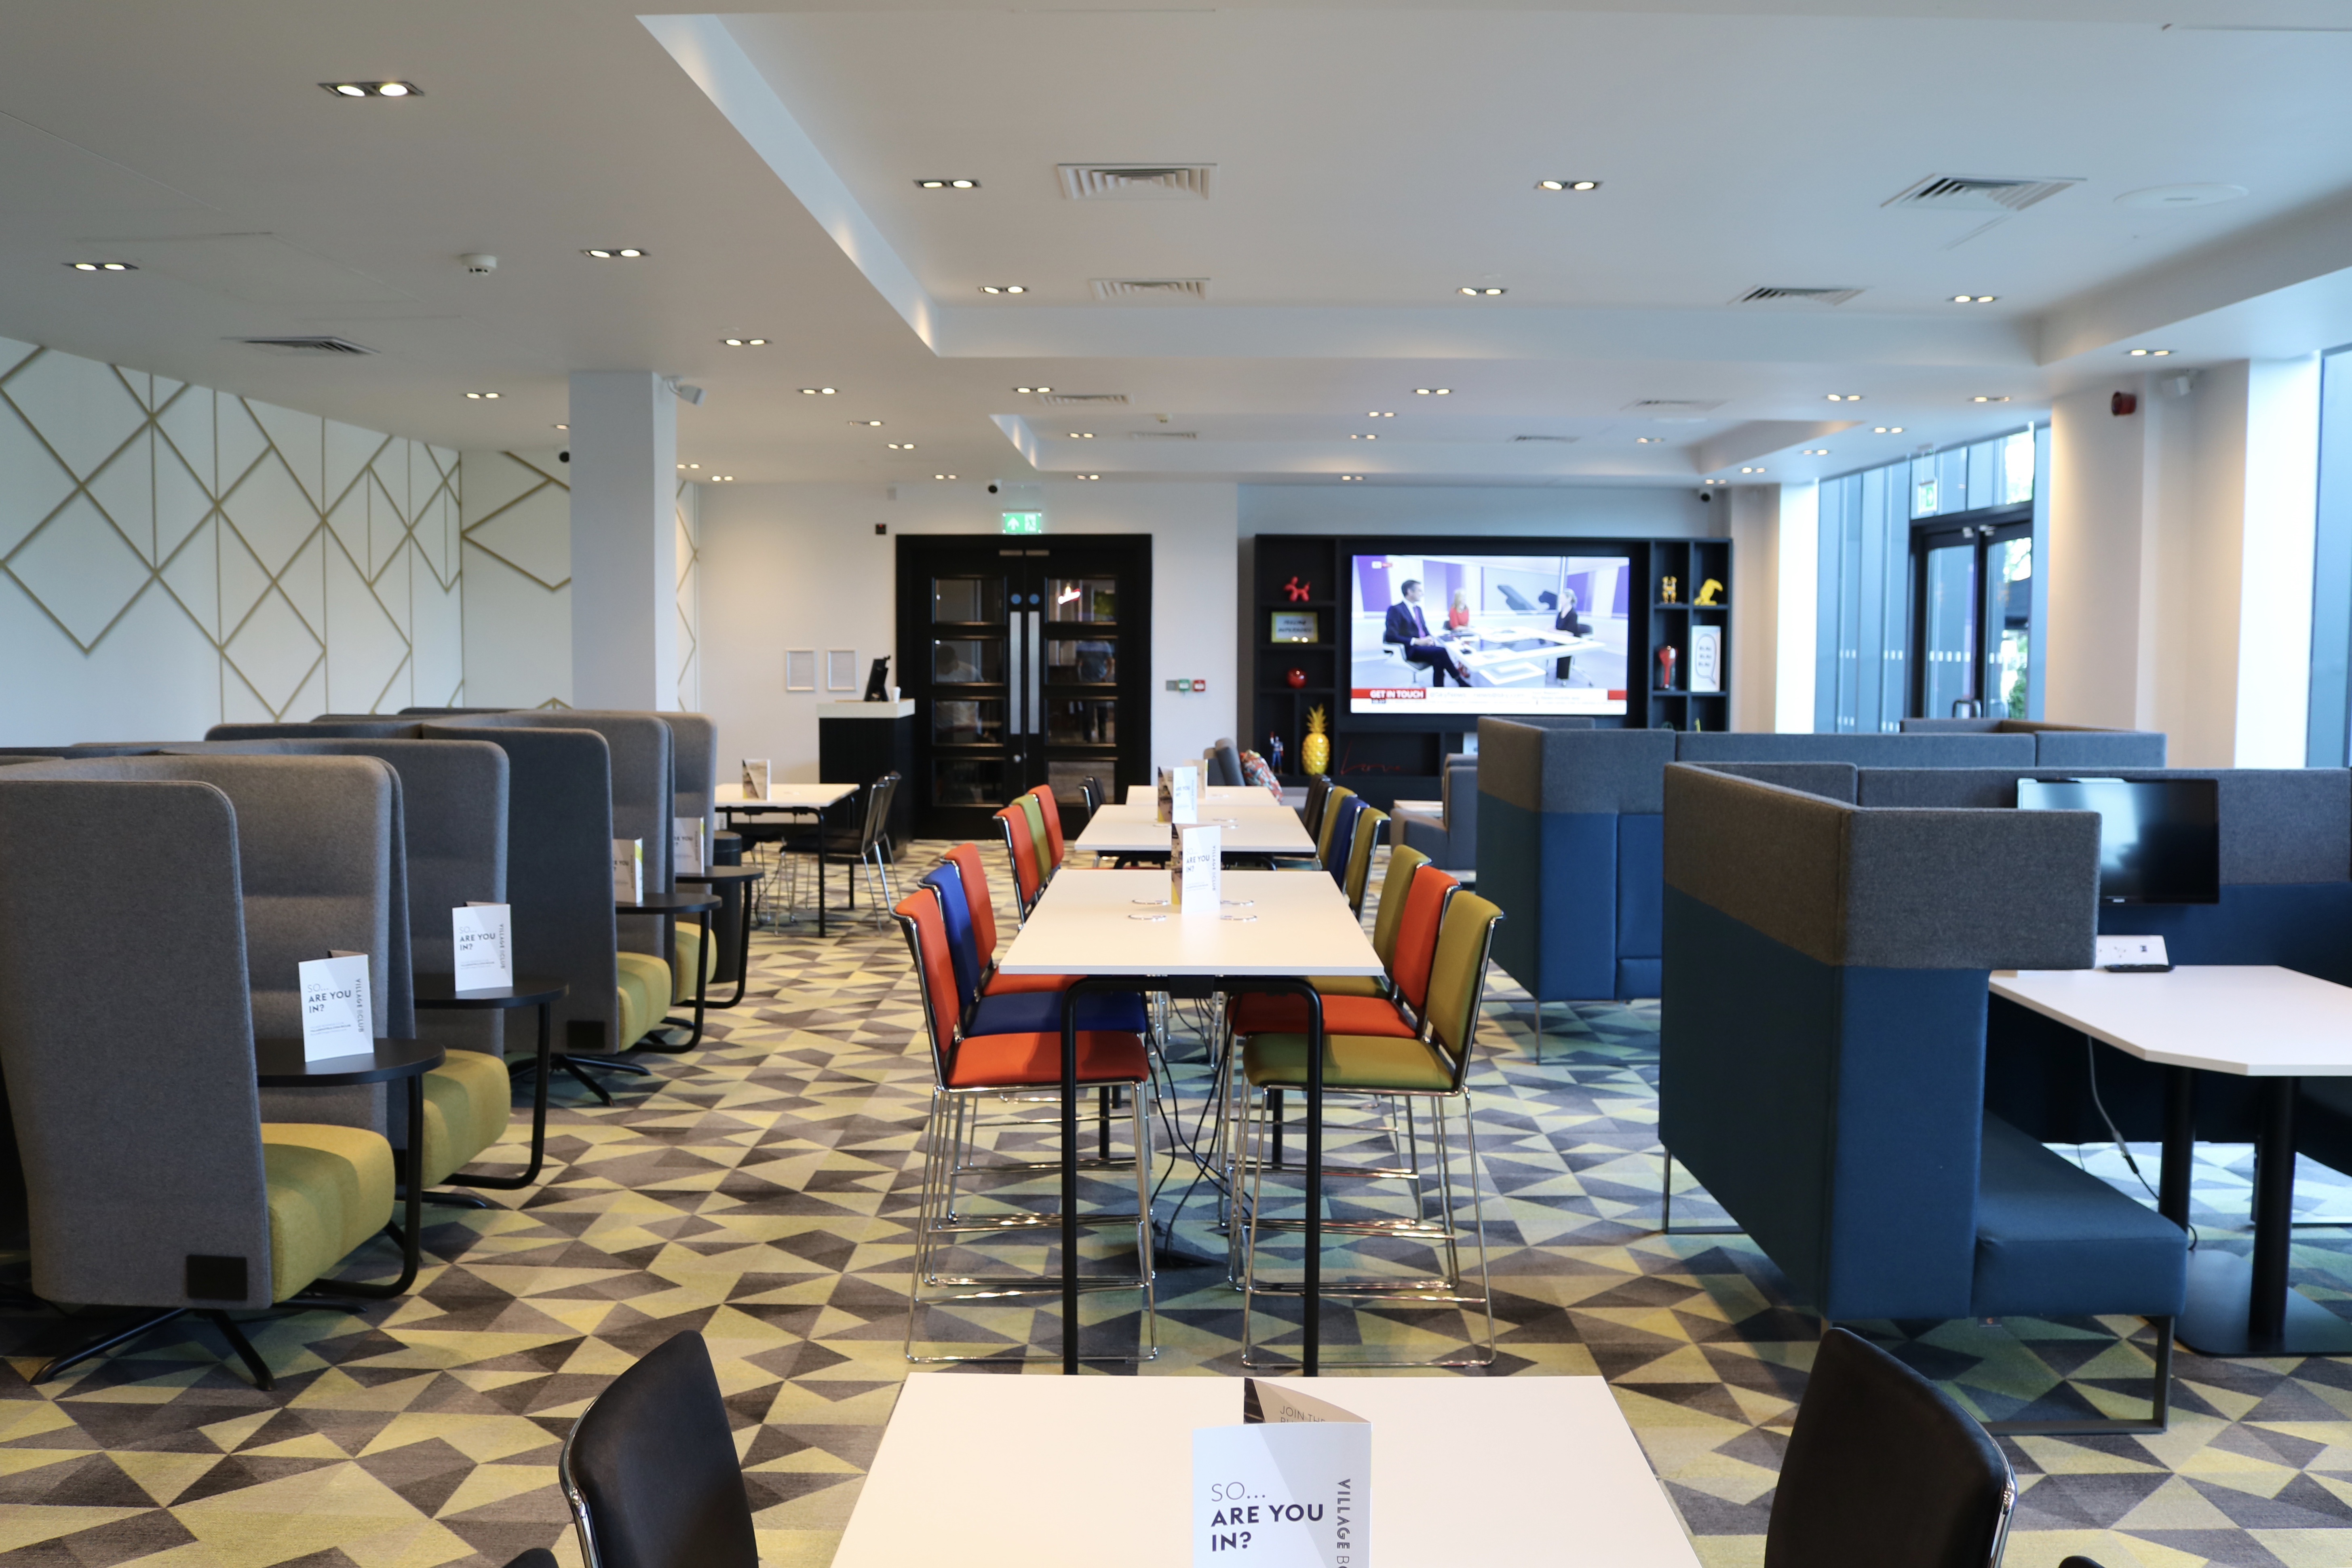 VWorks Business Club - Solihull